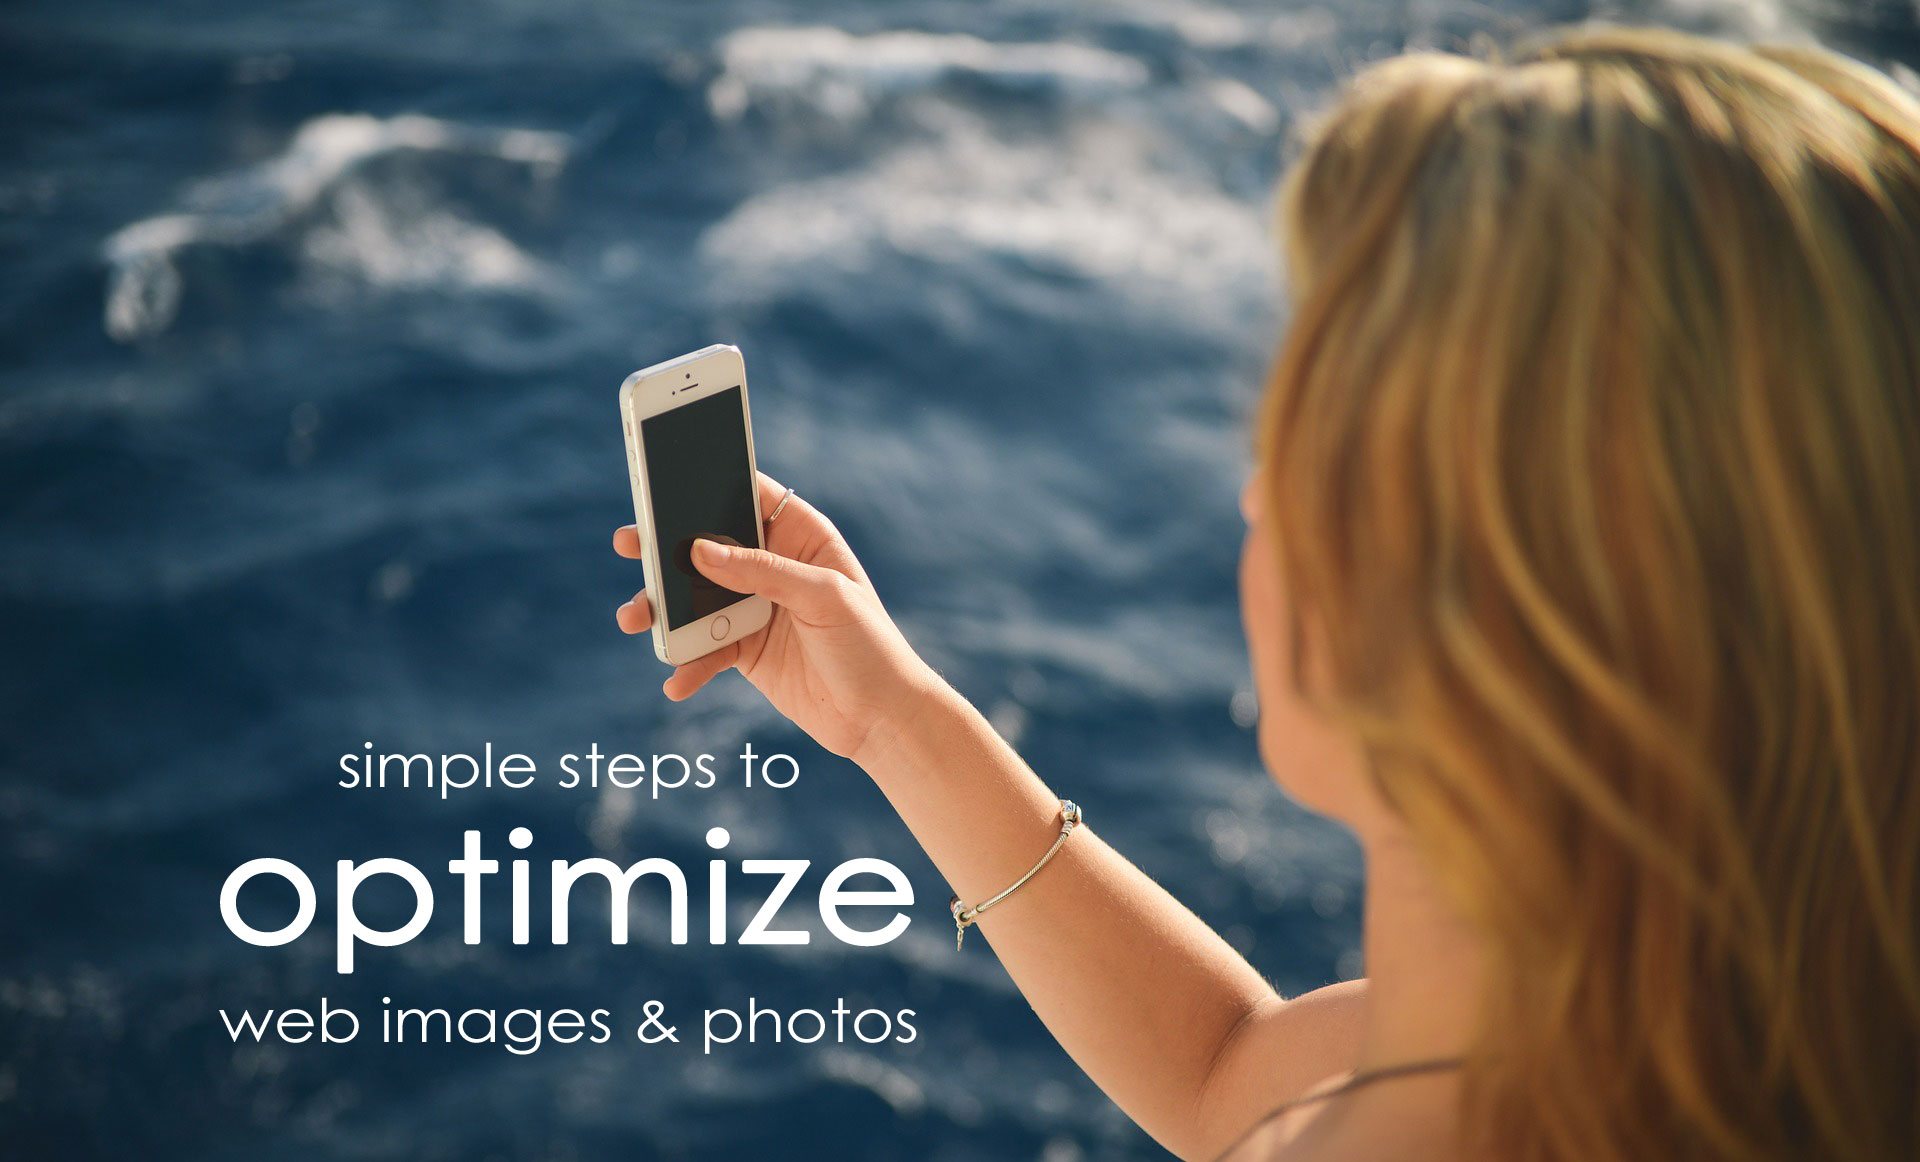 optimize web images photos